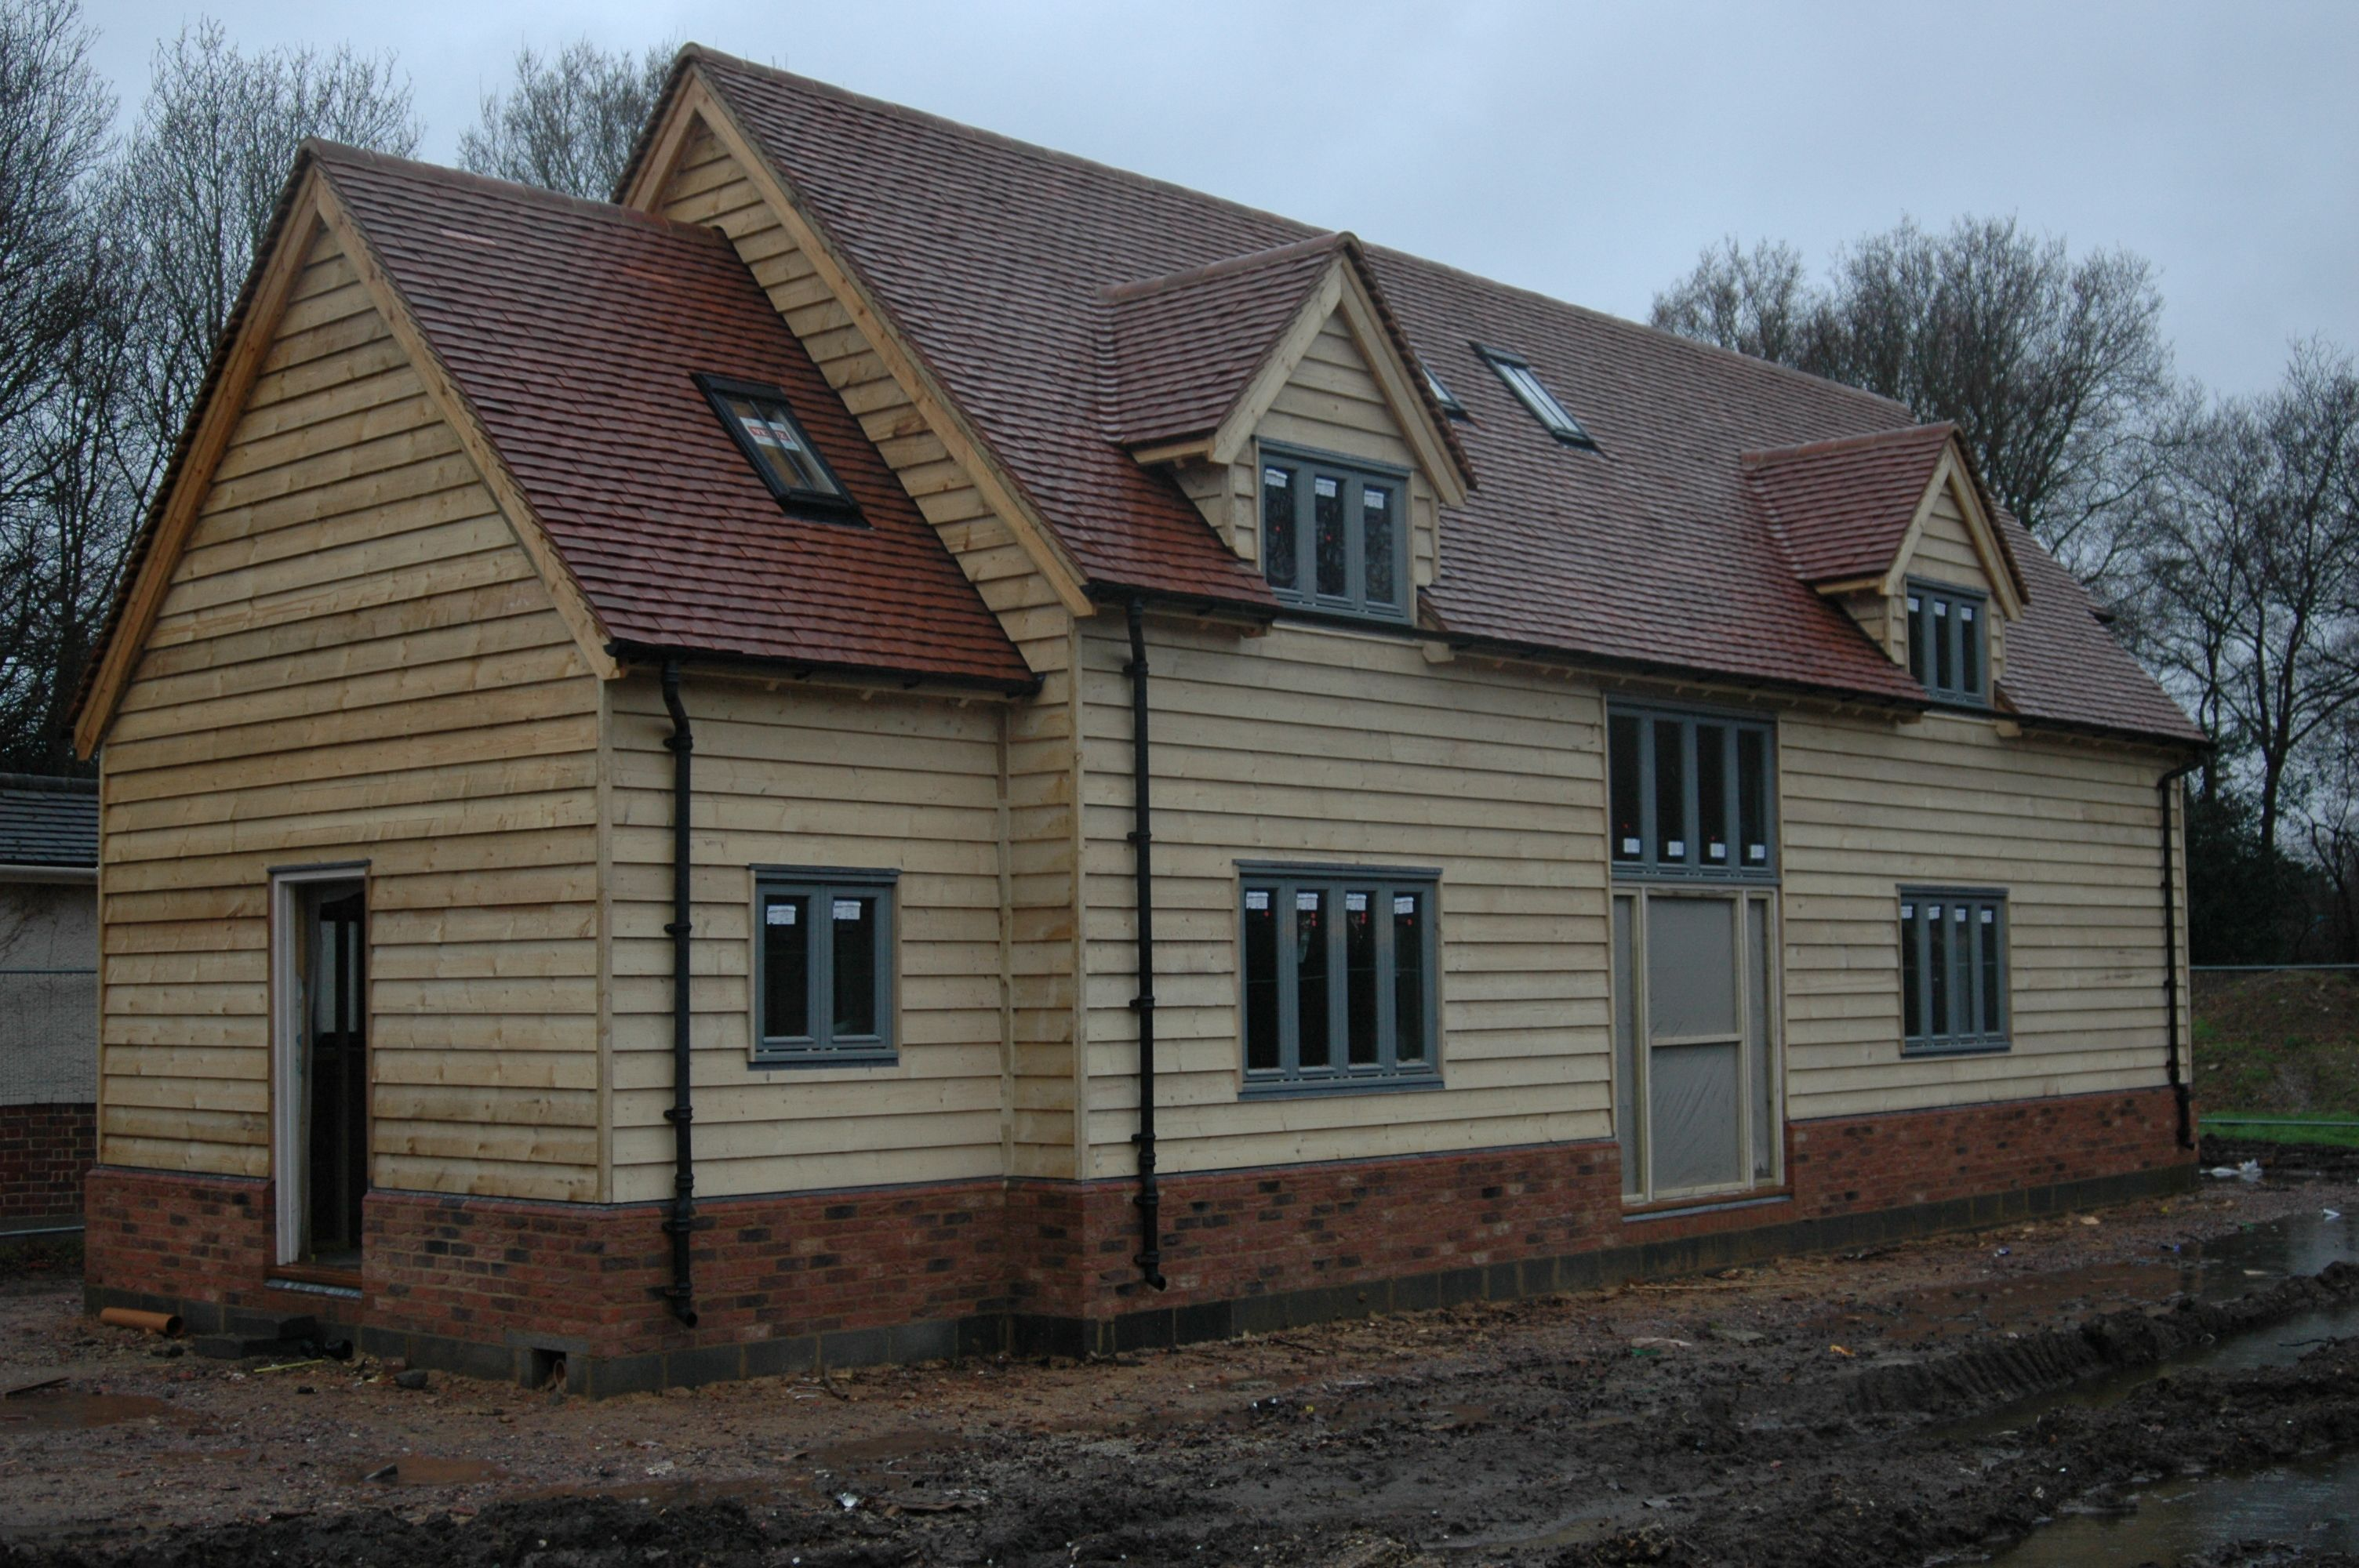 Border Oak - Weatherboarded barn style home under construction ...